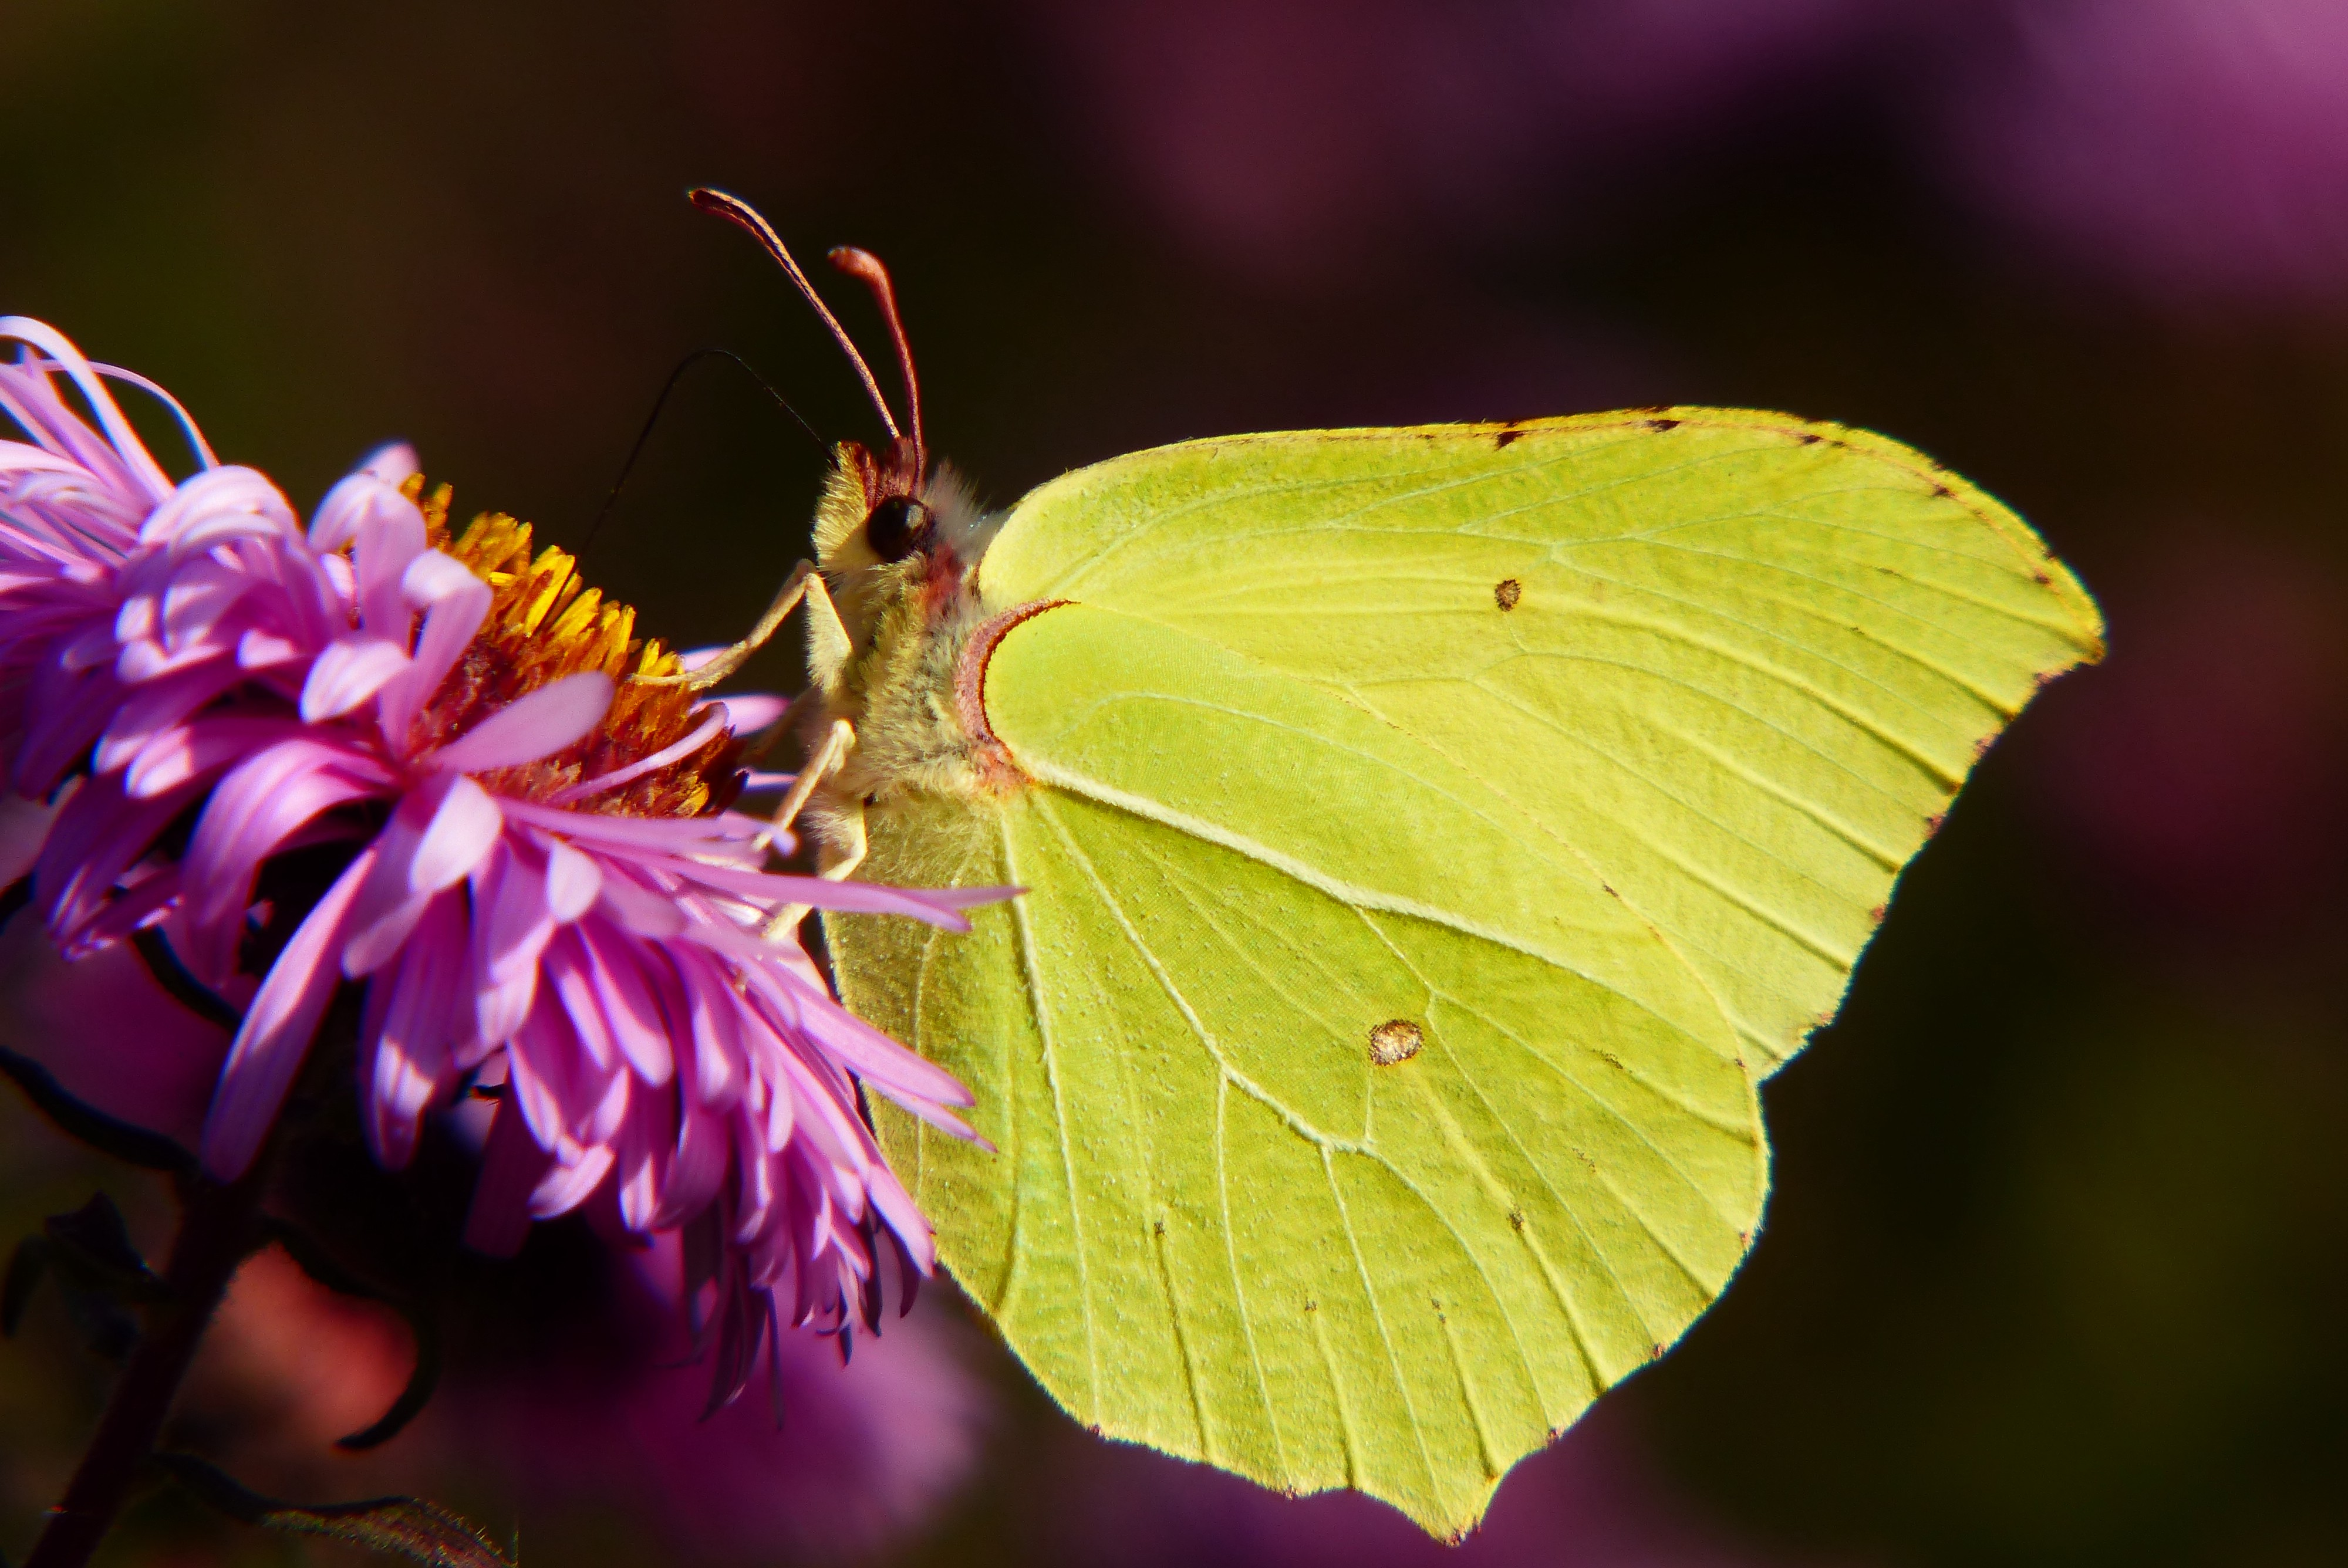 A yellow butterfly sitting on a flower.